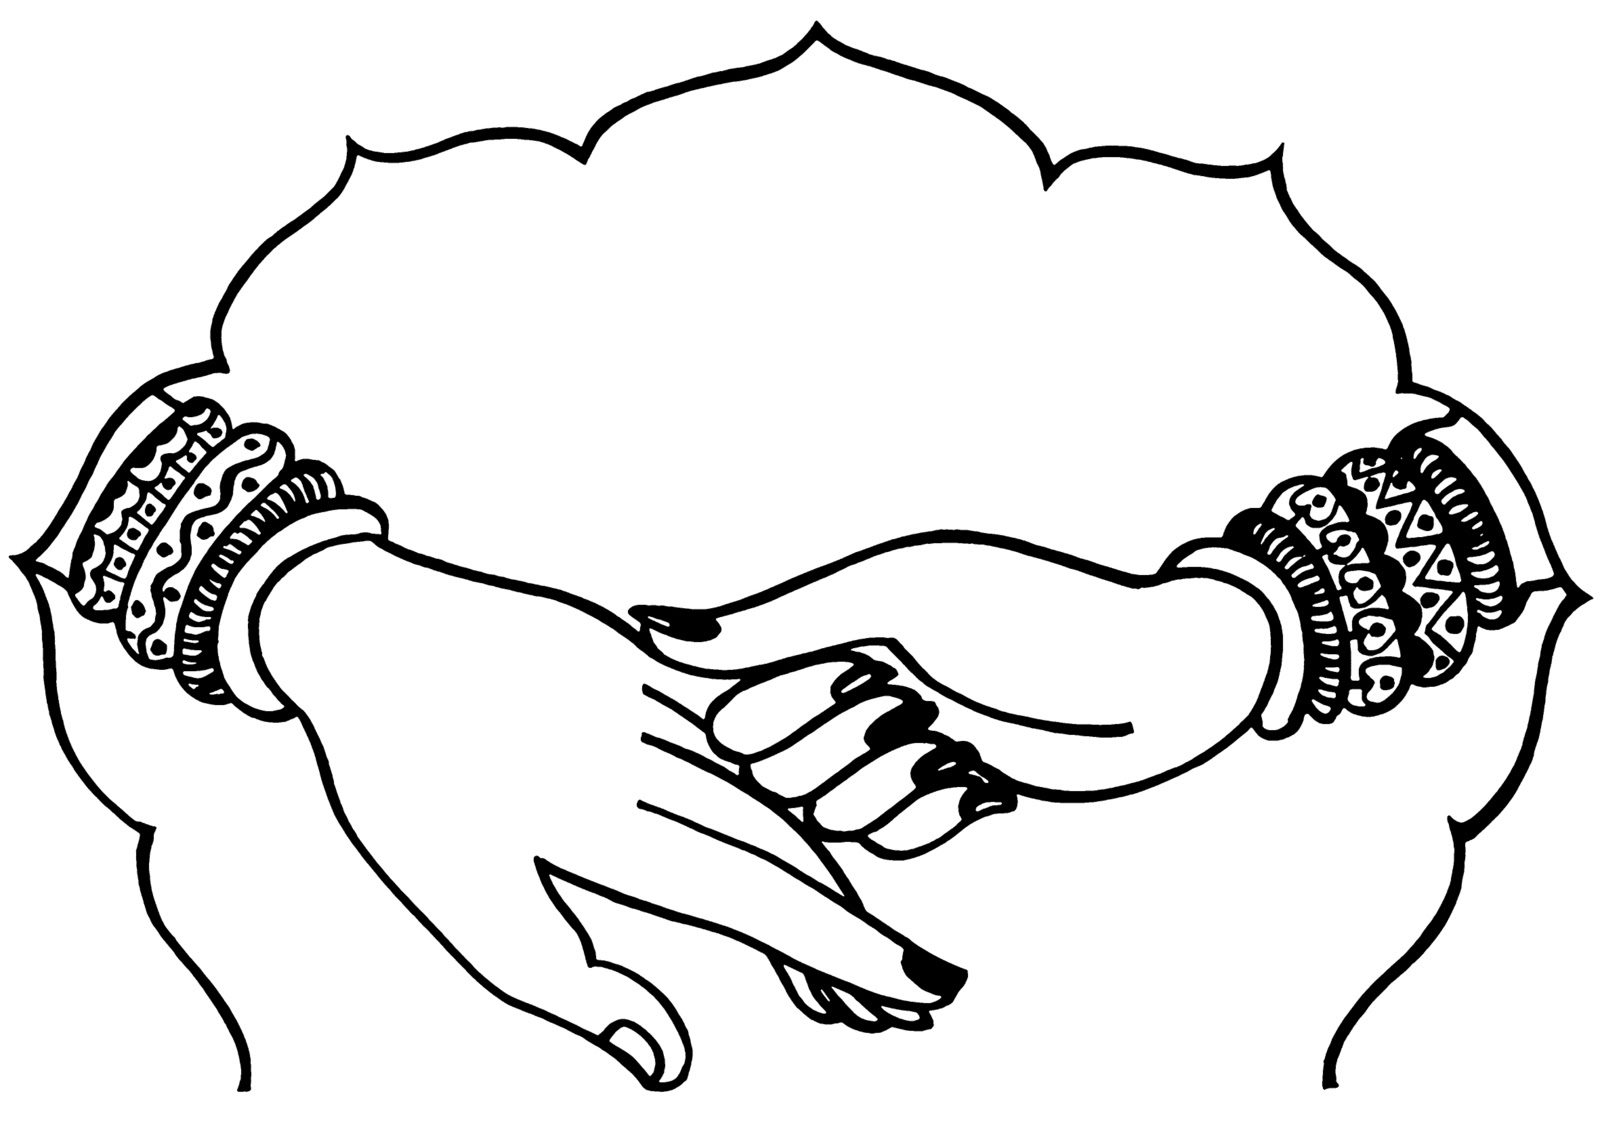 Indian Wedding Clipart | Free download best Indian Wedding Clipart ...